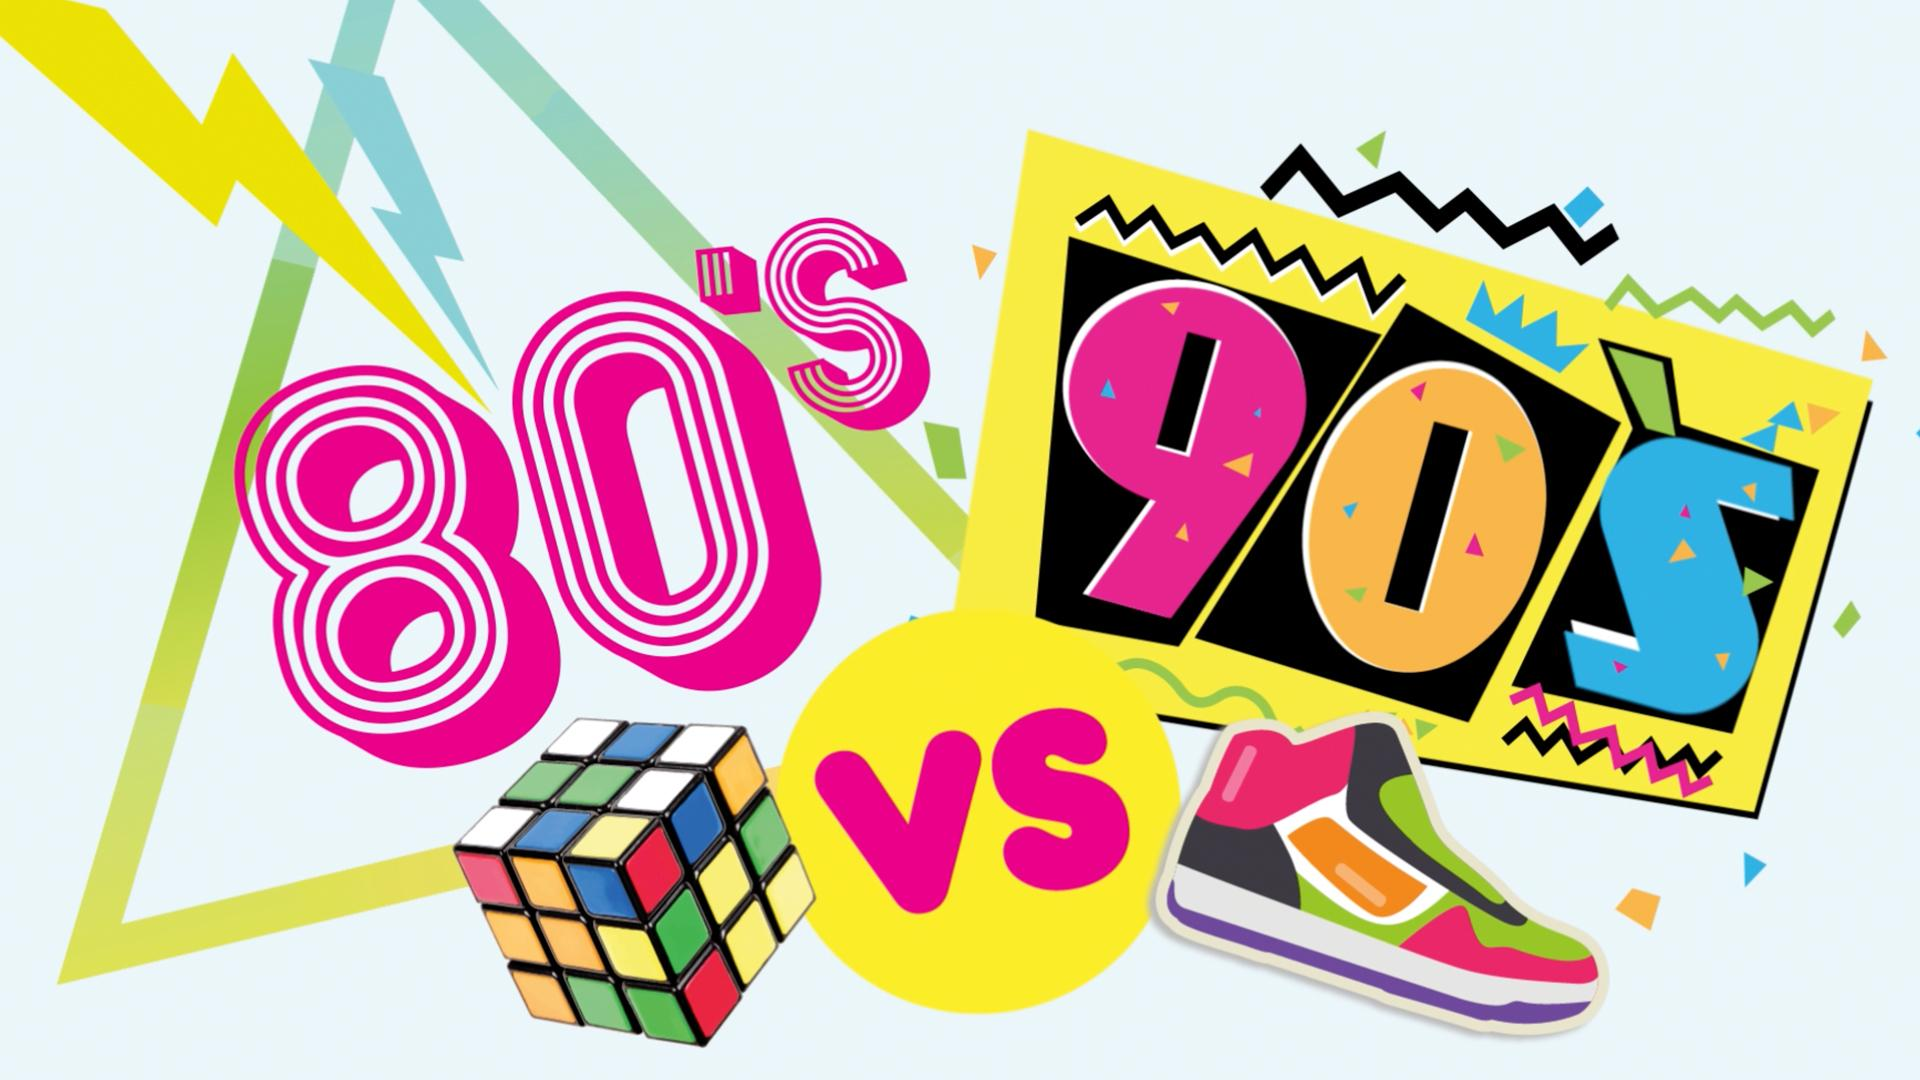 80s Party Wallpapers.